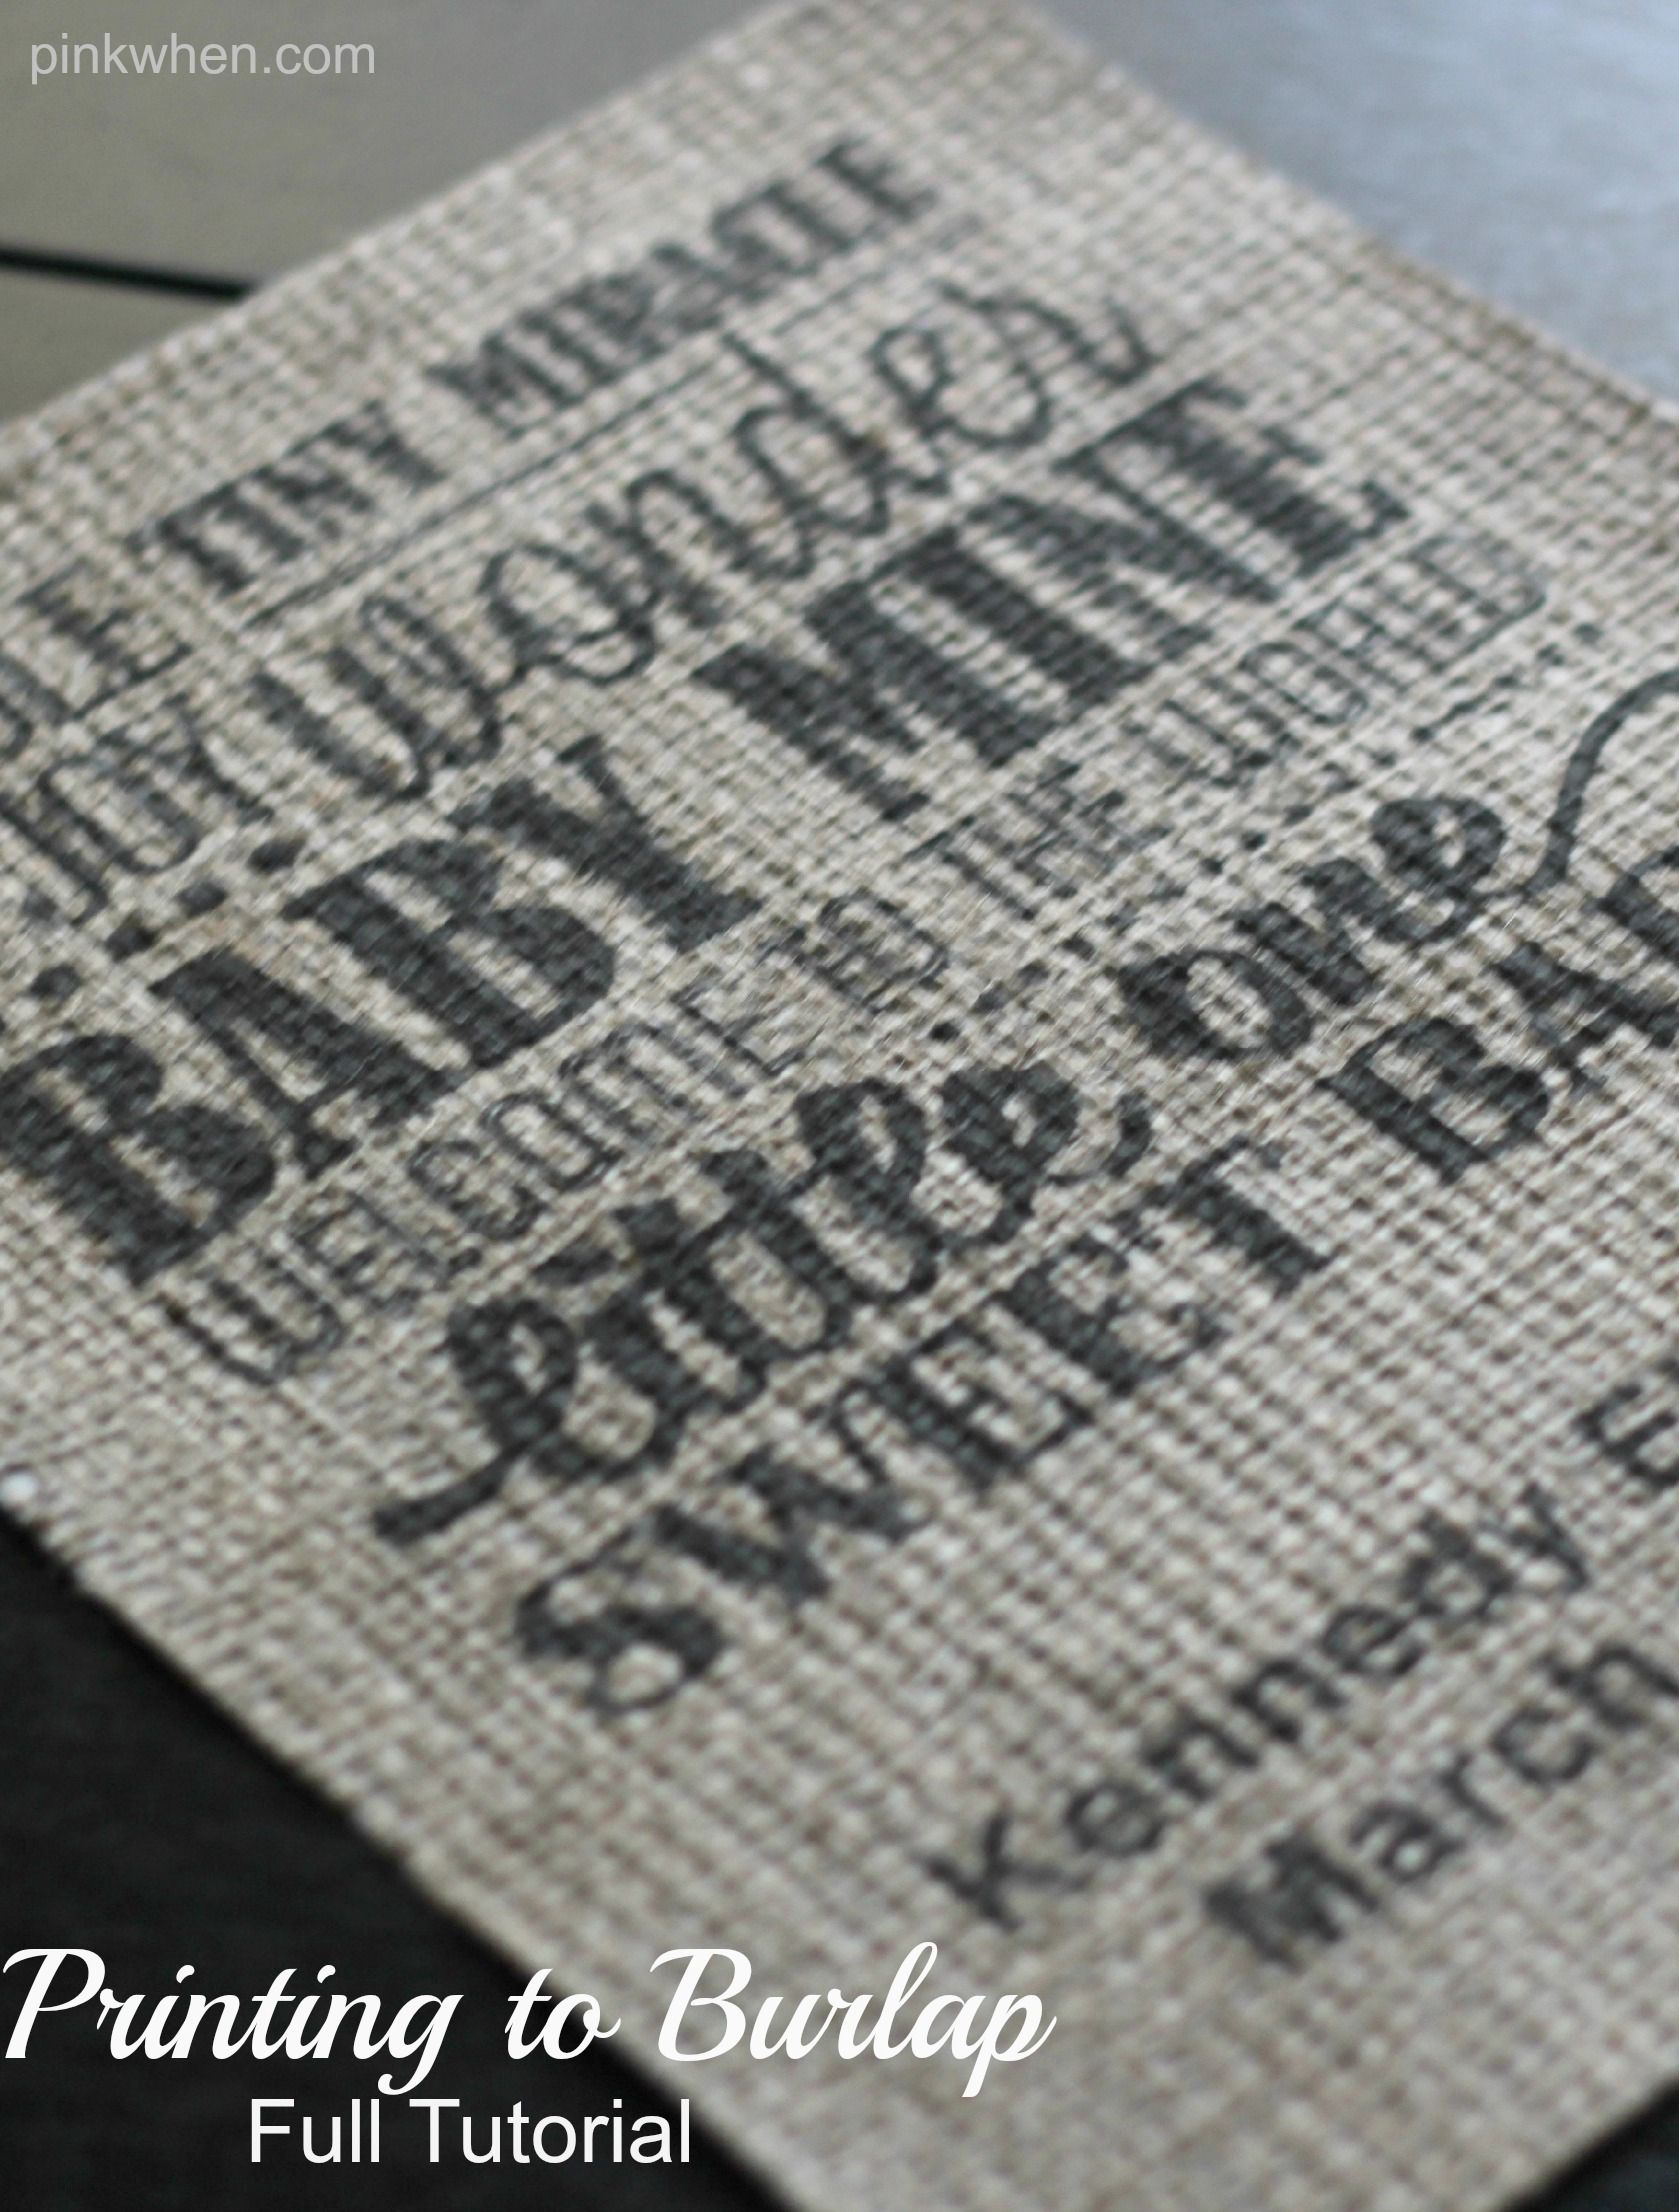 A full tutorial on how to print any design onto burlap using your home inkjet printer. Perfect for framing, birth announcements, banners, and more!